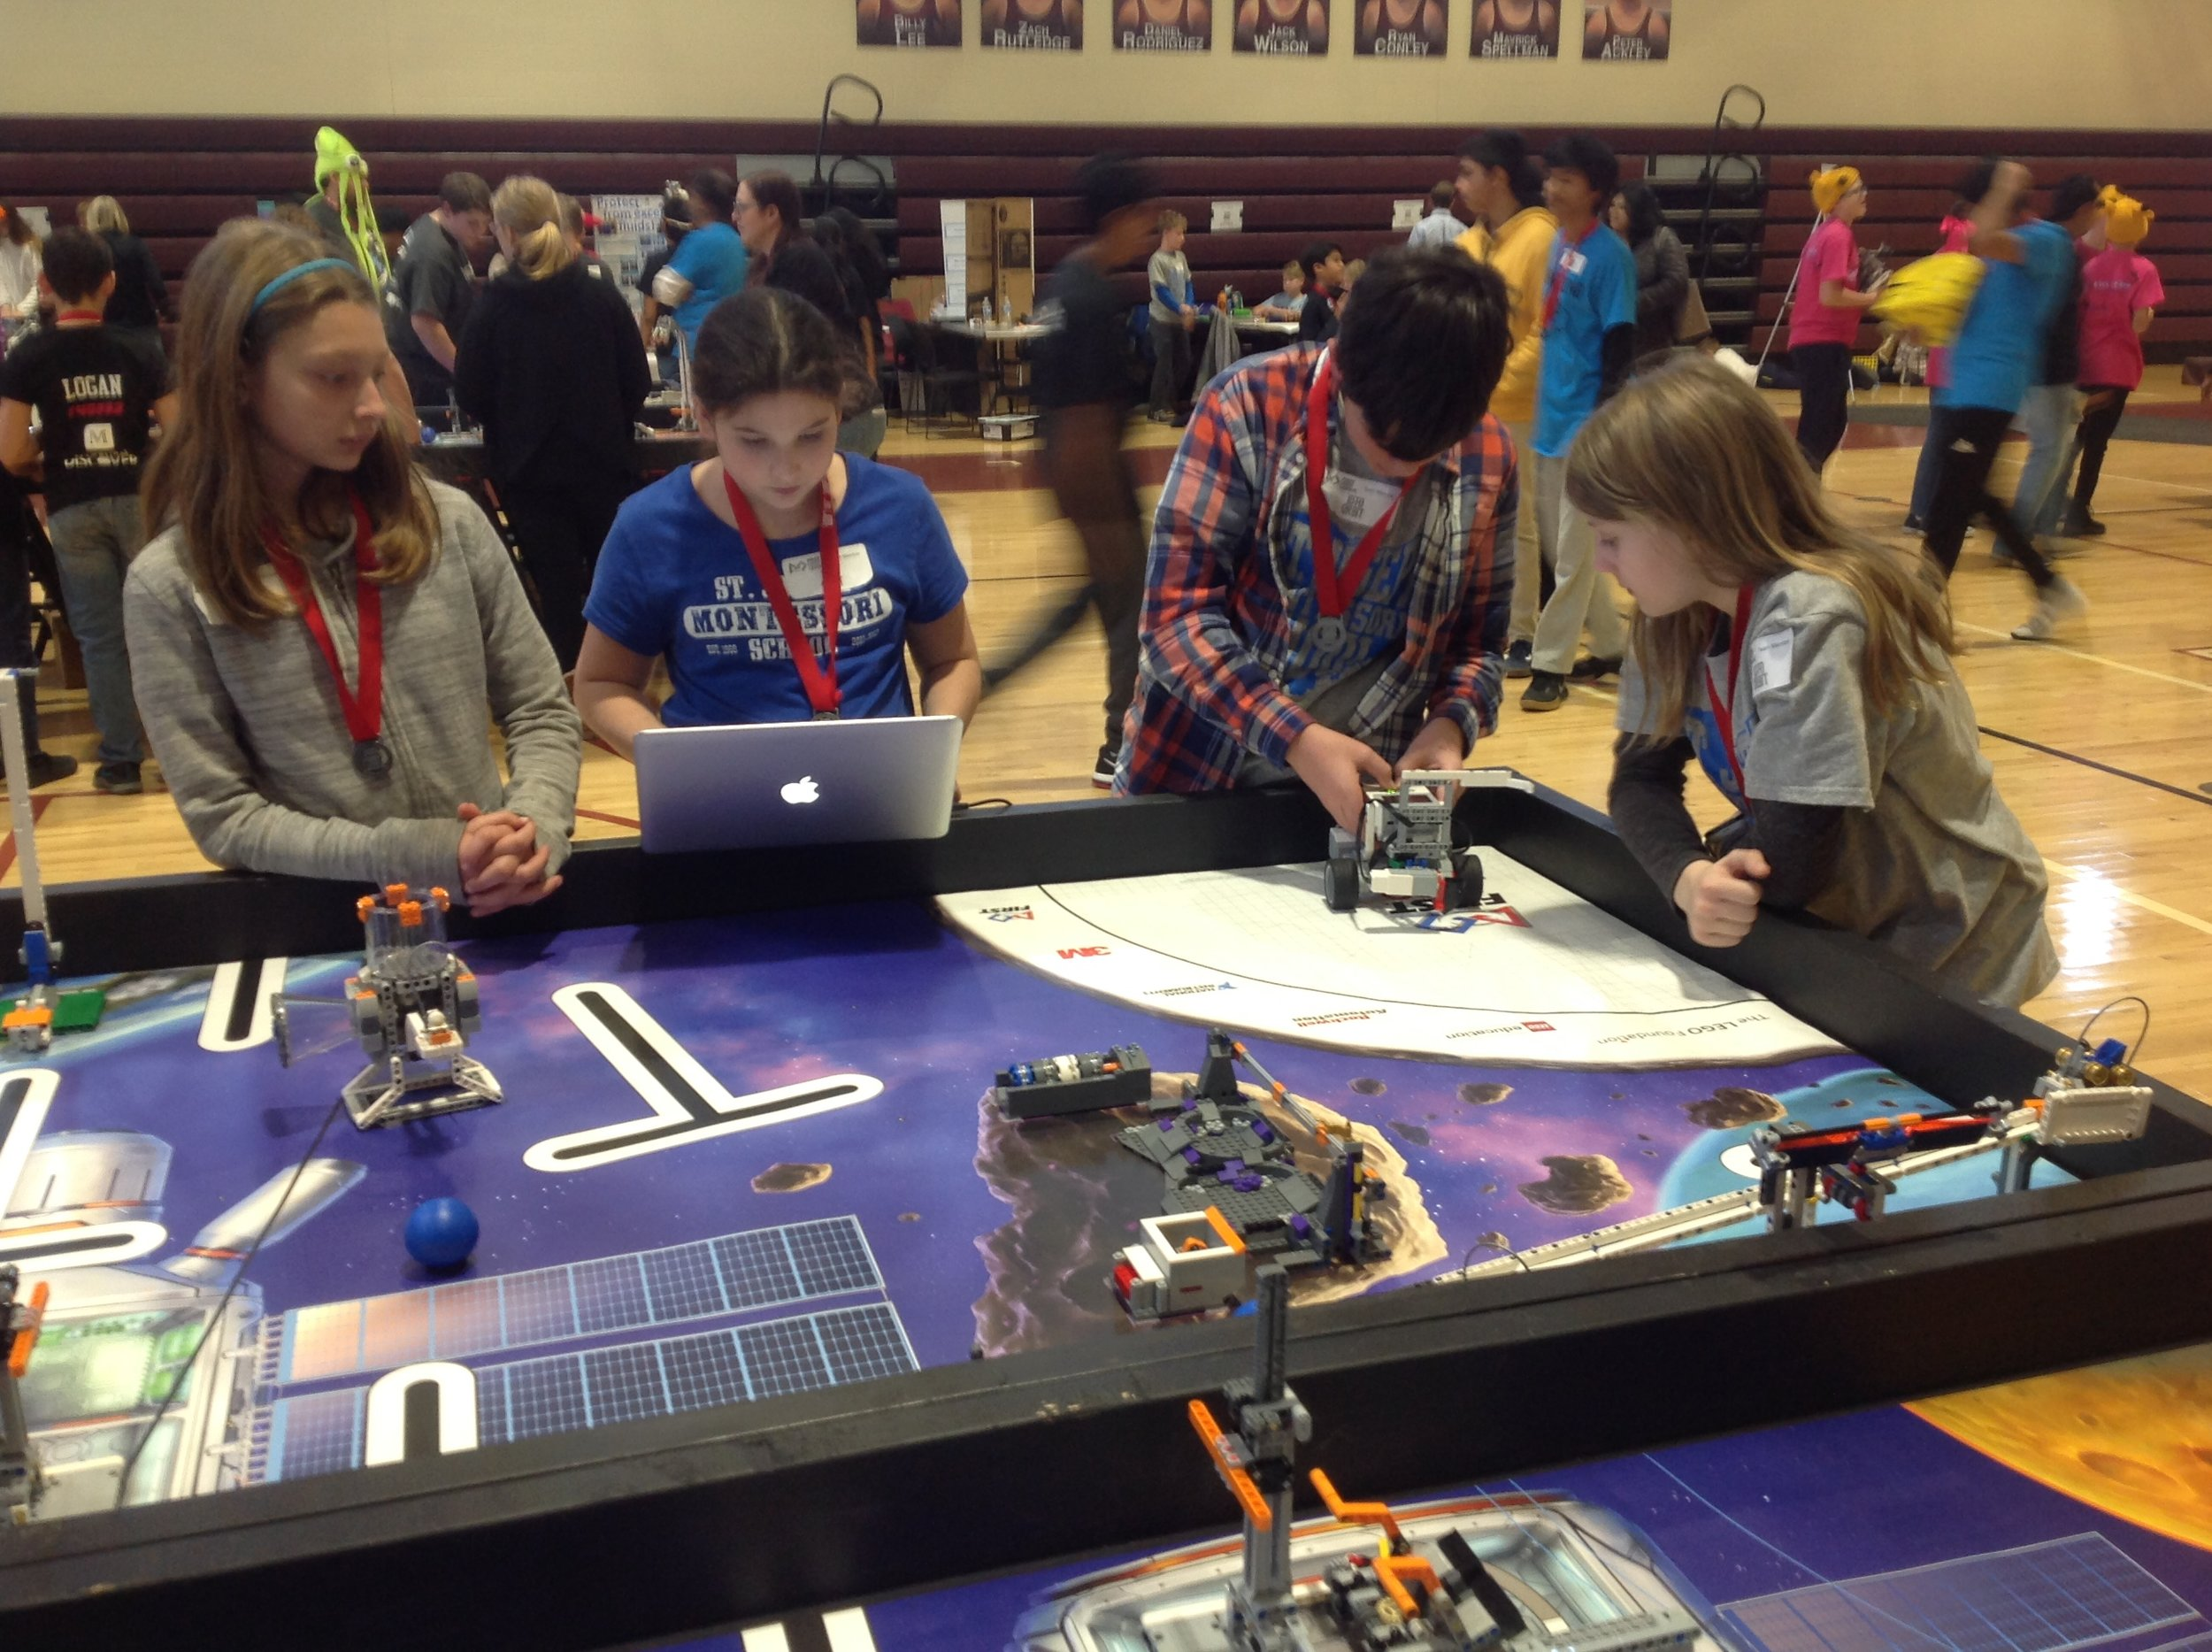 """FIRST LEGO League - This fall, our students took part in FIRST LEGO League, an international competition that has students research and explore a scientific and real-world challenge. This year's theme, """"Into Orbit,"""" had students investigate the challenges humans face in exploring space. For the project's robotics challenge, students designed and programmed a robot to complete missions related to the year's theme."""